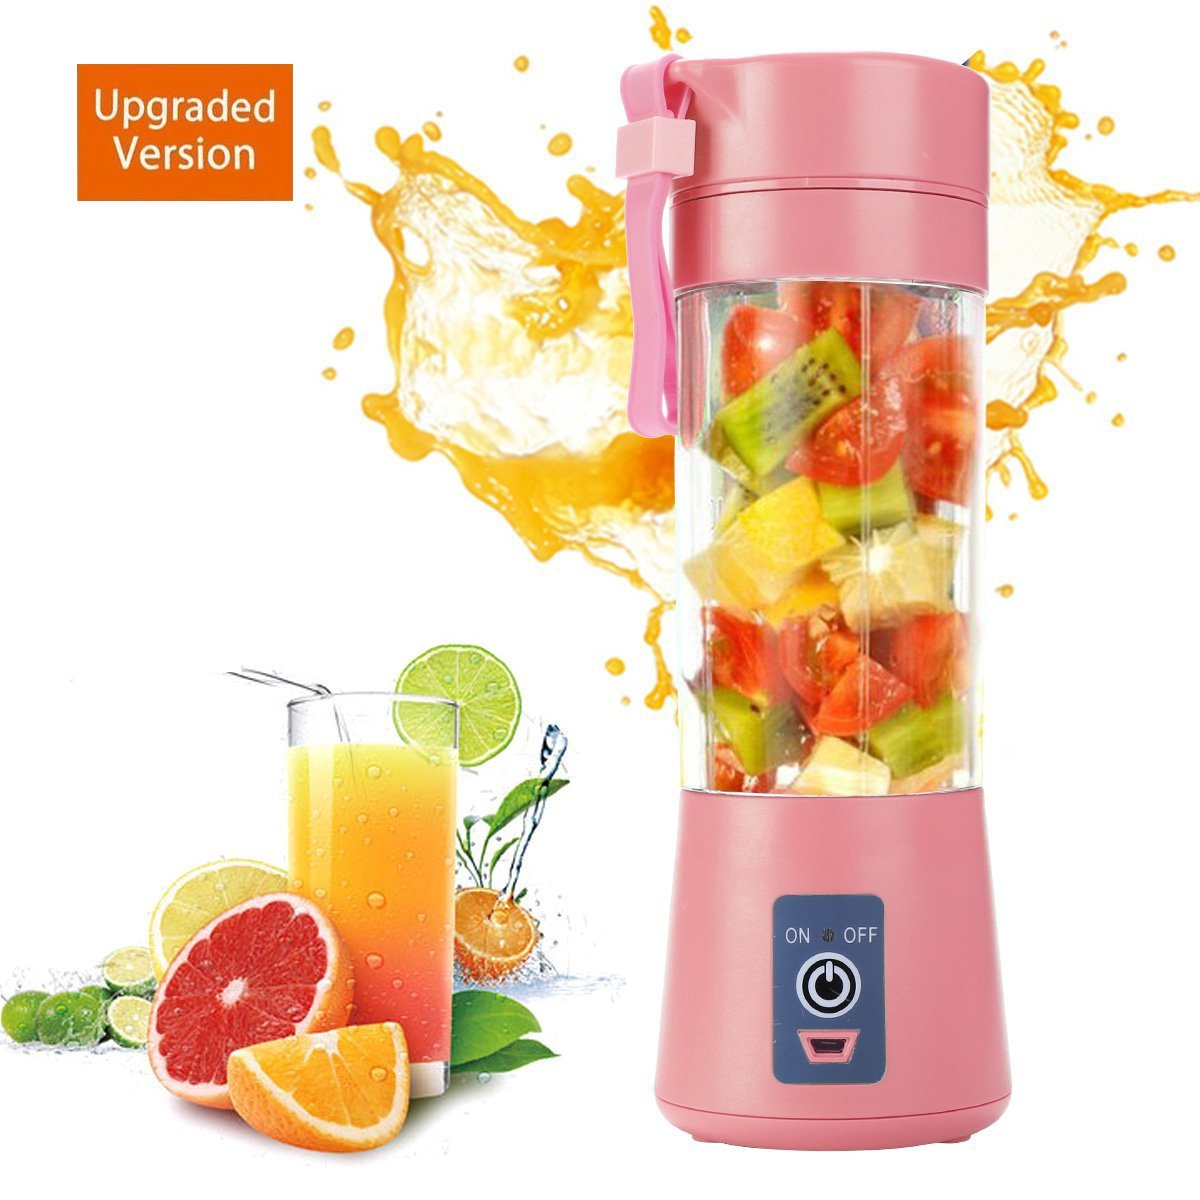 Personal Blender USB Juicer Cup Portable Juicer Blender 6 Blades Rechargeable Fruit Mixing Machine For Baby Travel 380ml[New Version] (Pink)